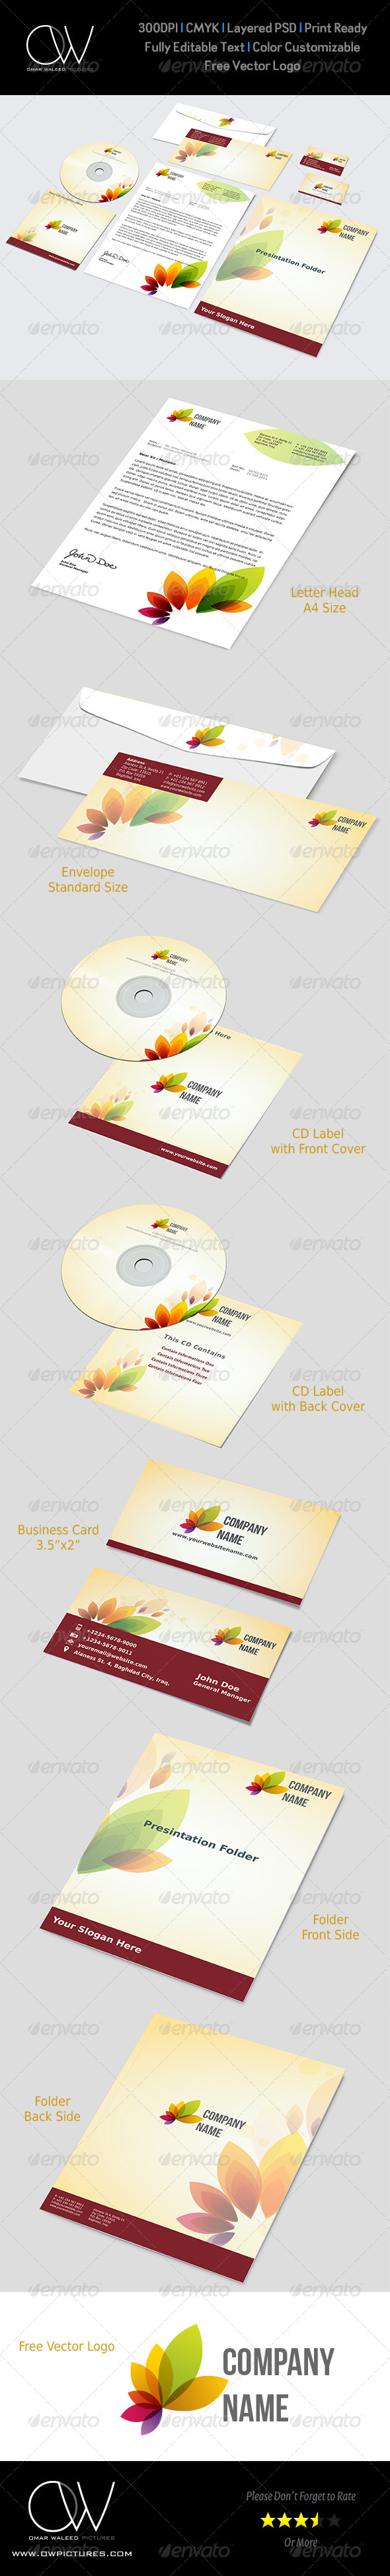 GraphicRiver Corporate Stationery Pack Vol.7 4829865